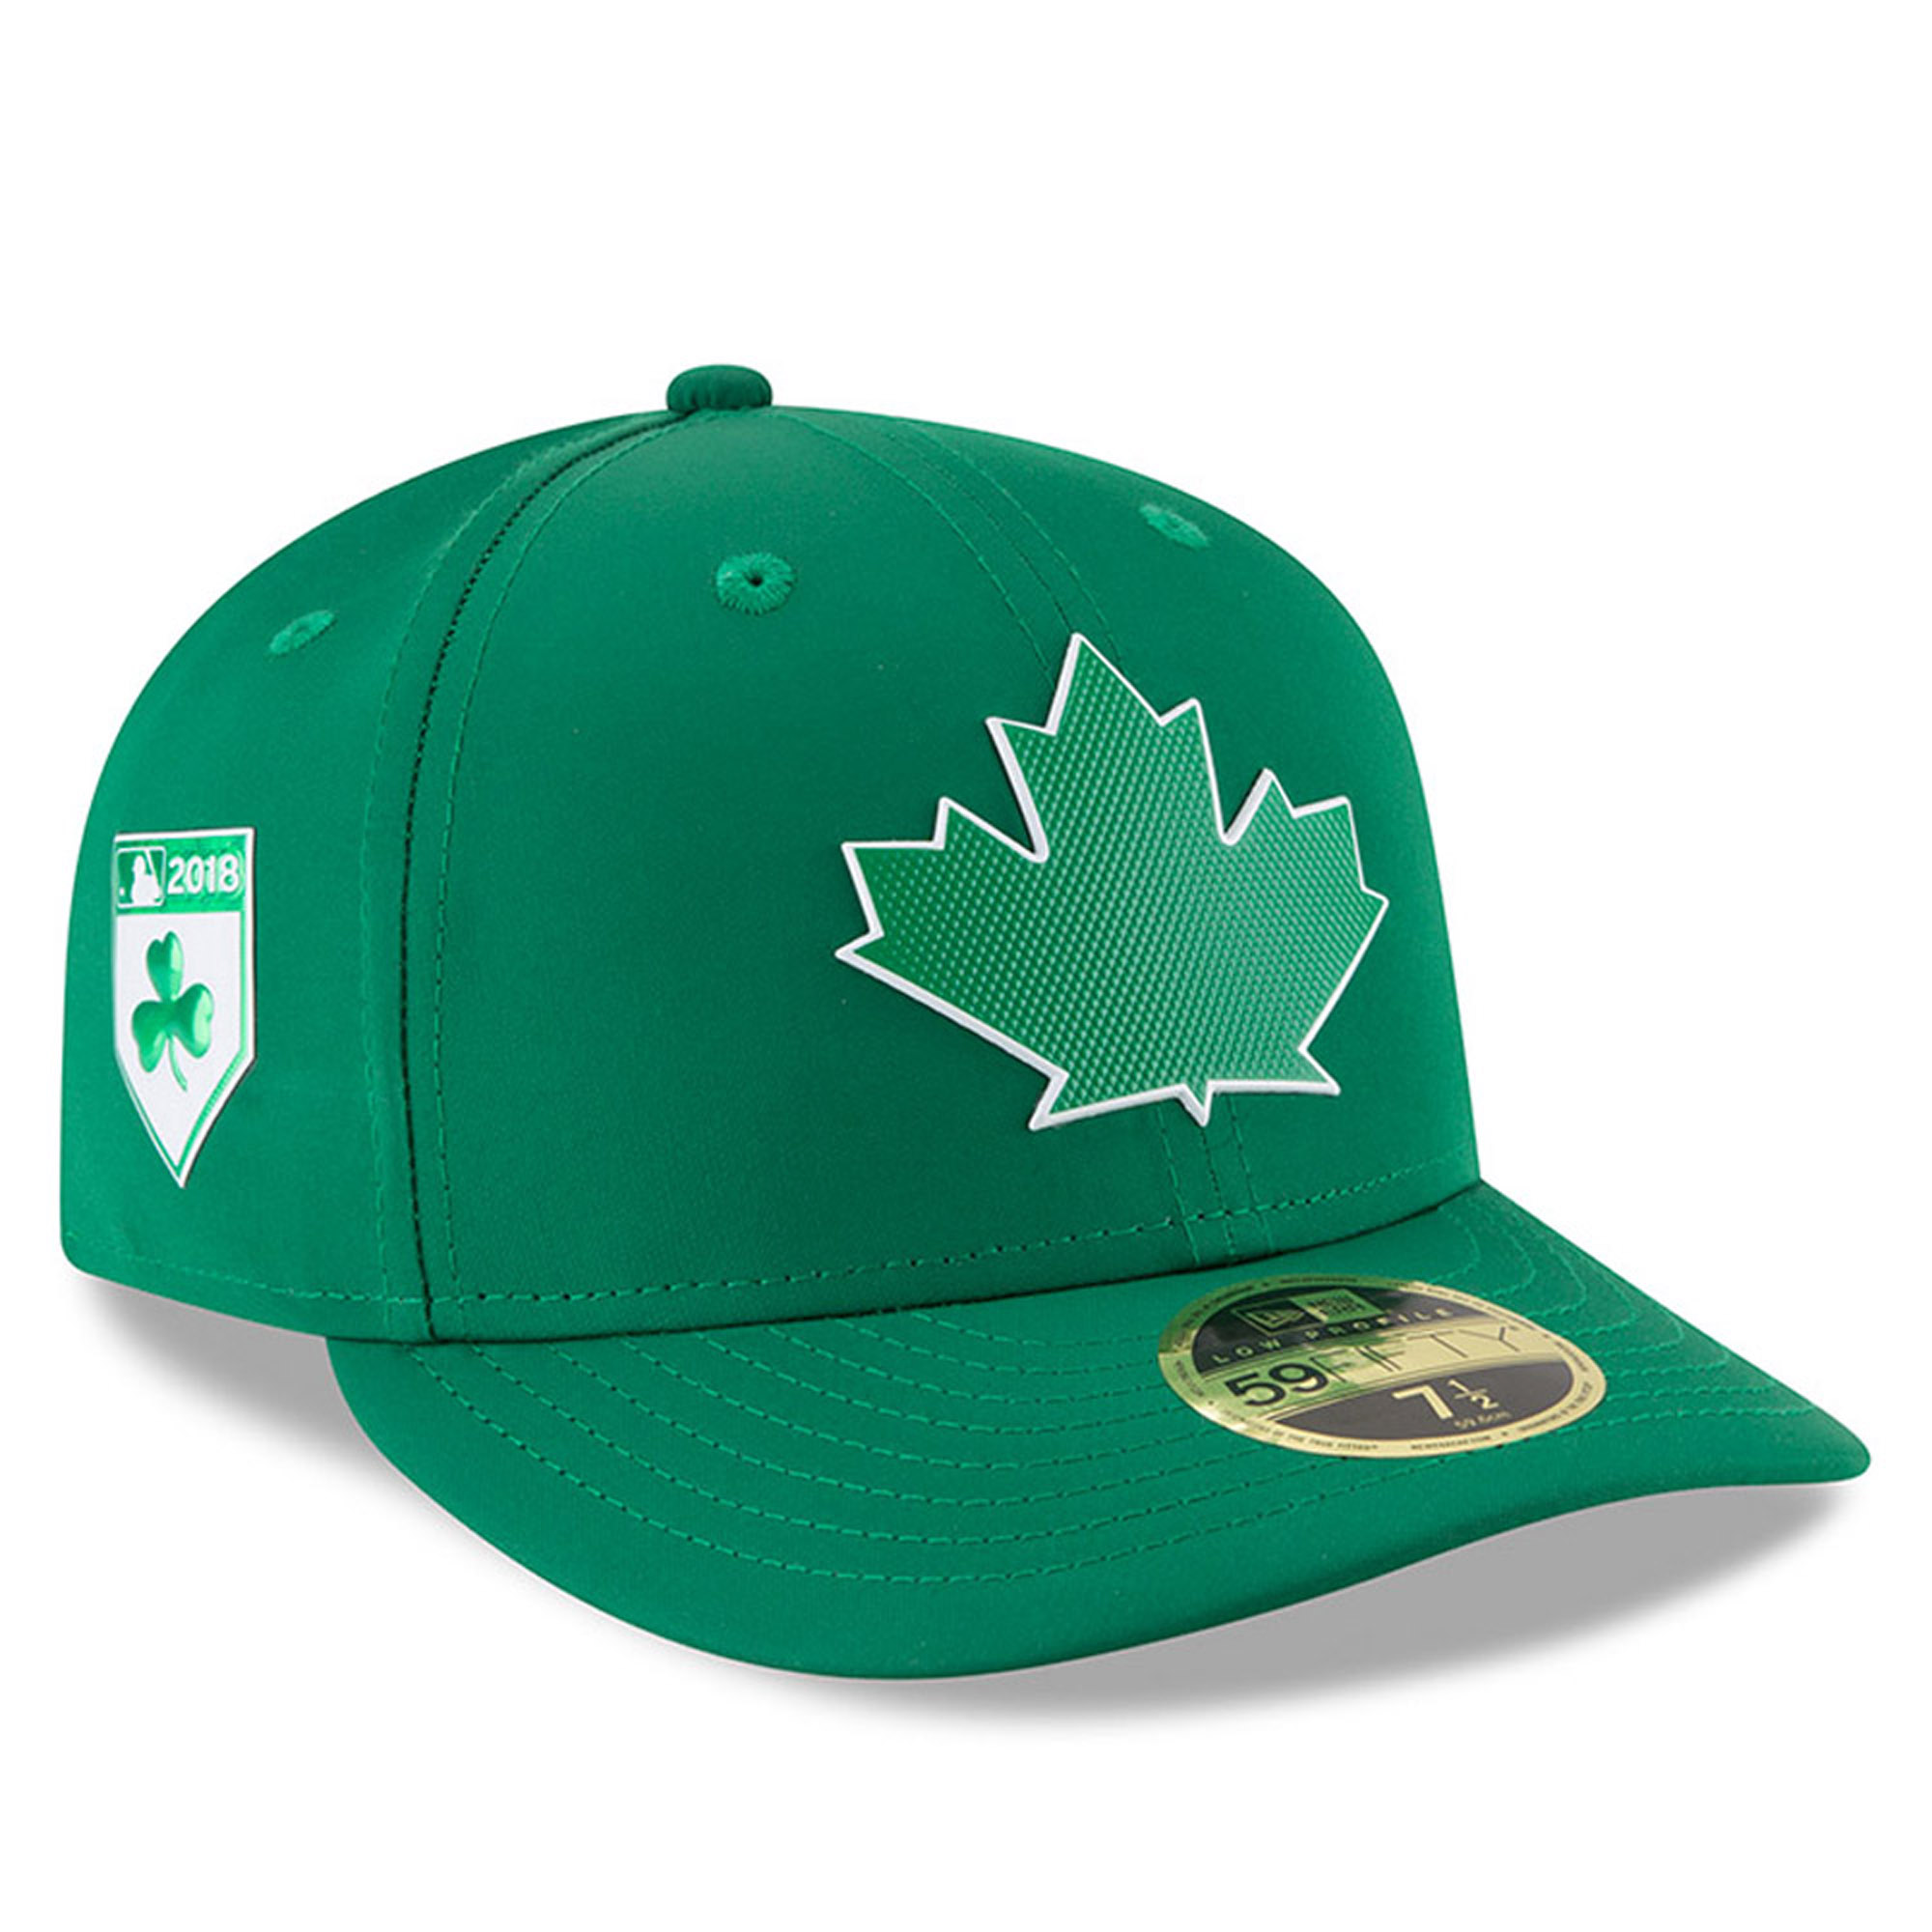 Toronto Blue Jays New Era 2018 St. Patrick's Day Prolight Low Profile 59FIFTY Fitted Hat - Green